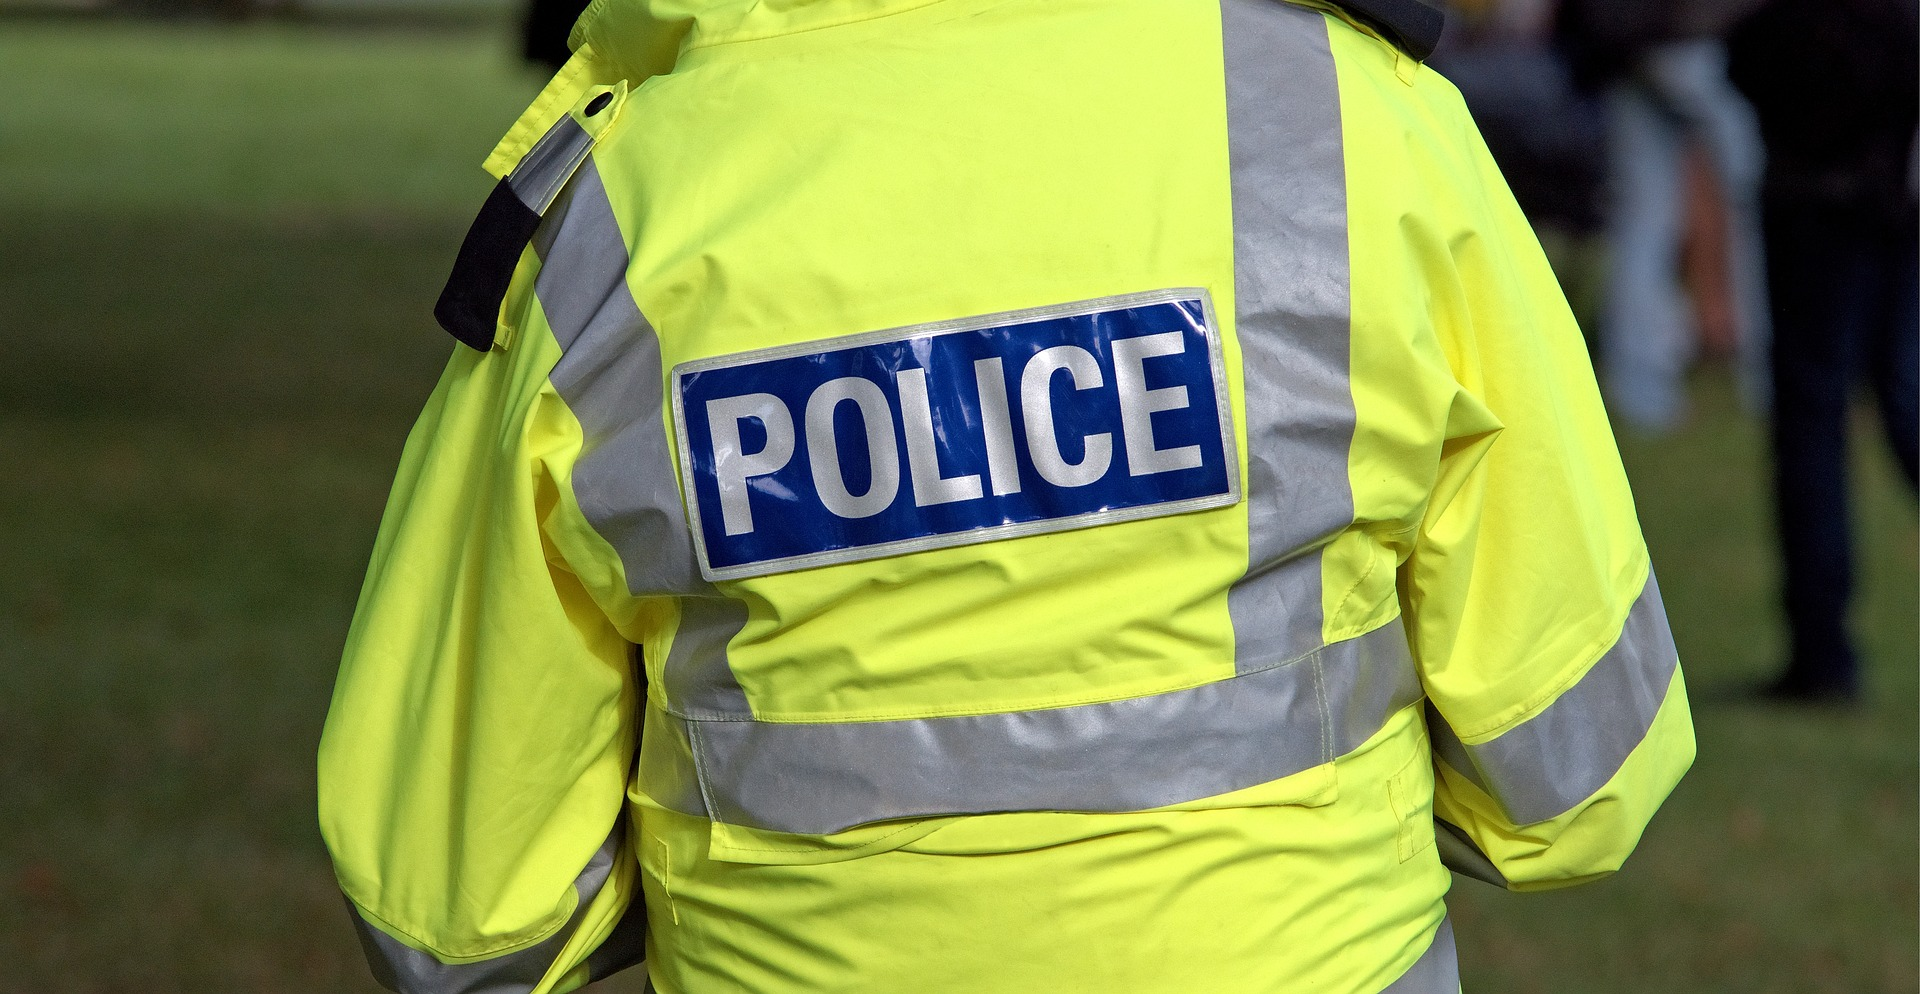 Police urging residents to report crimes